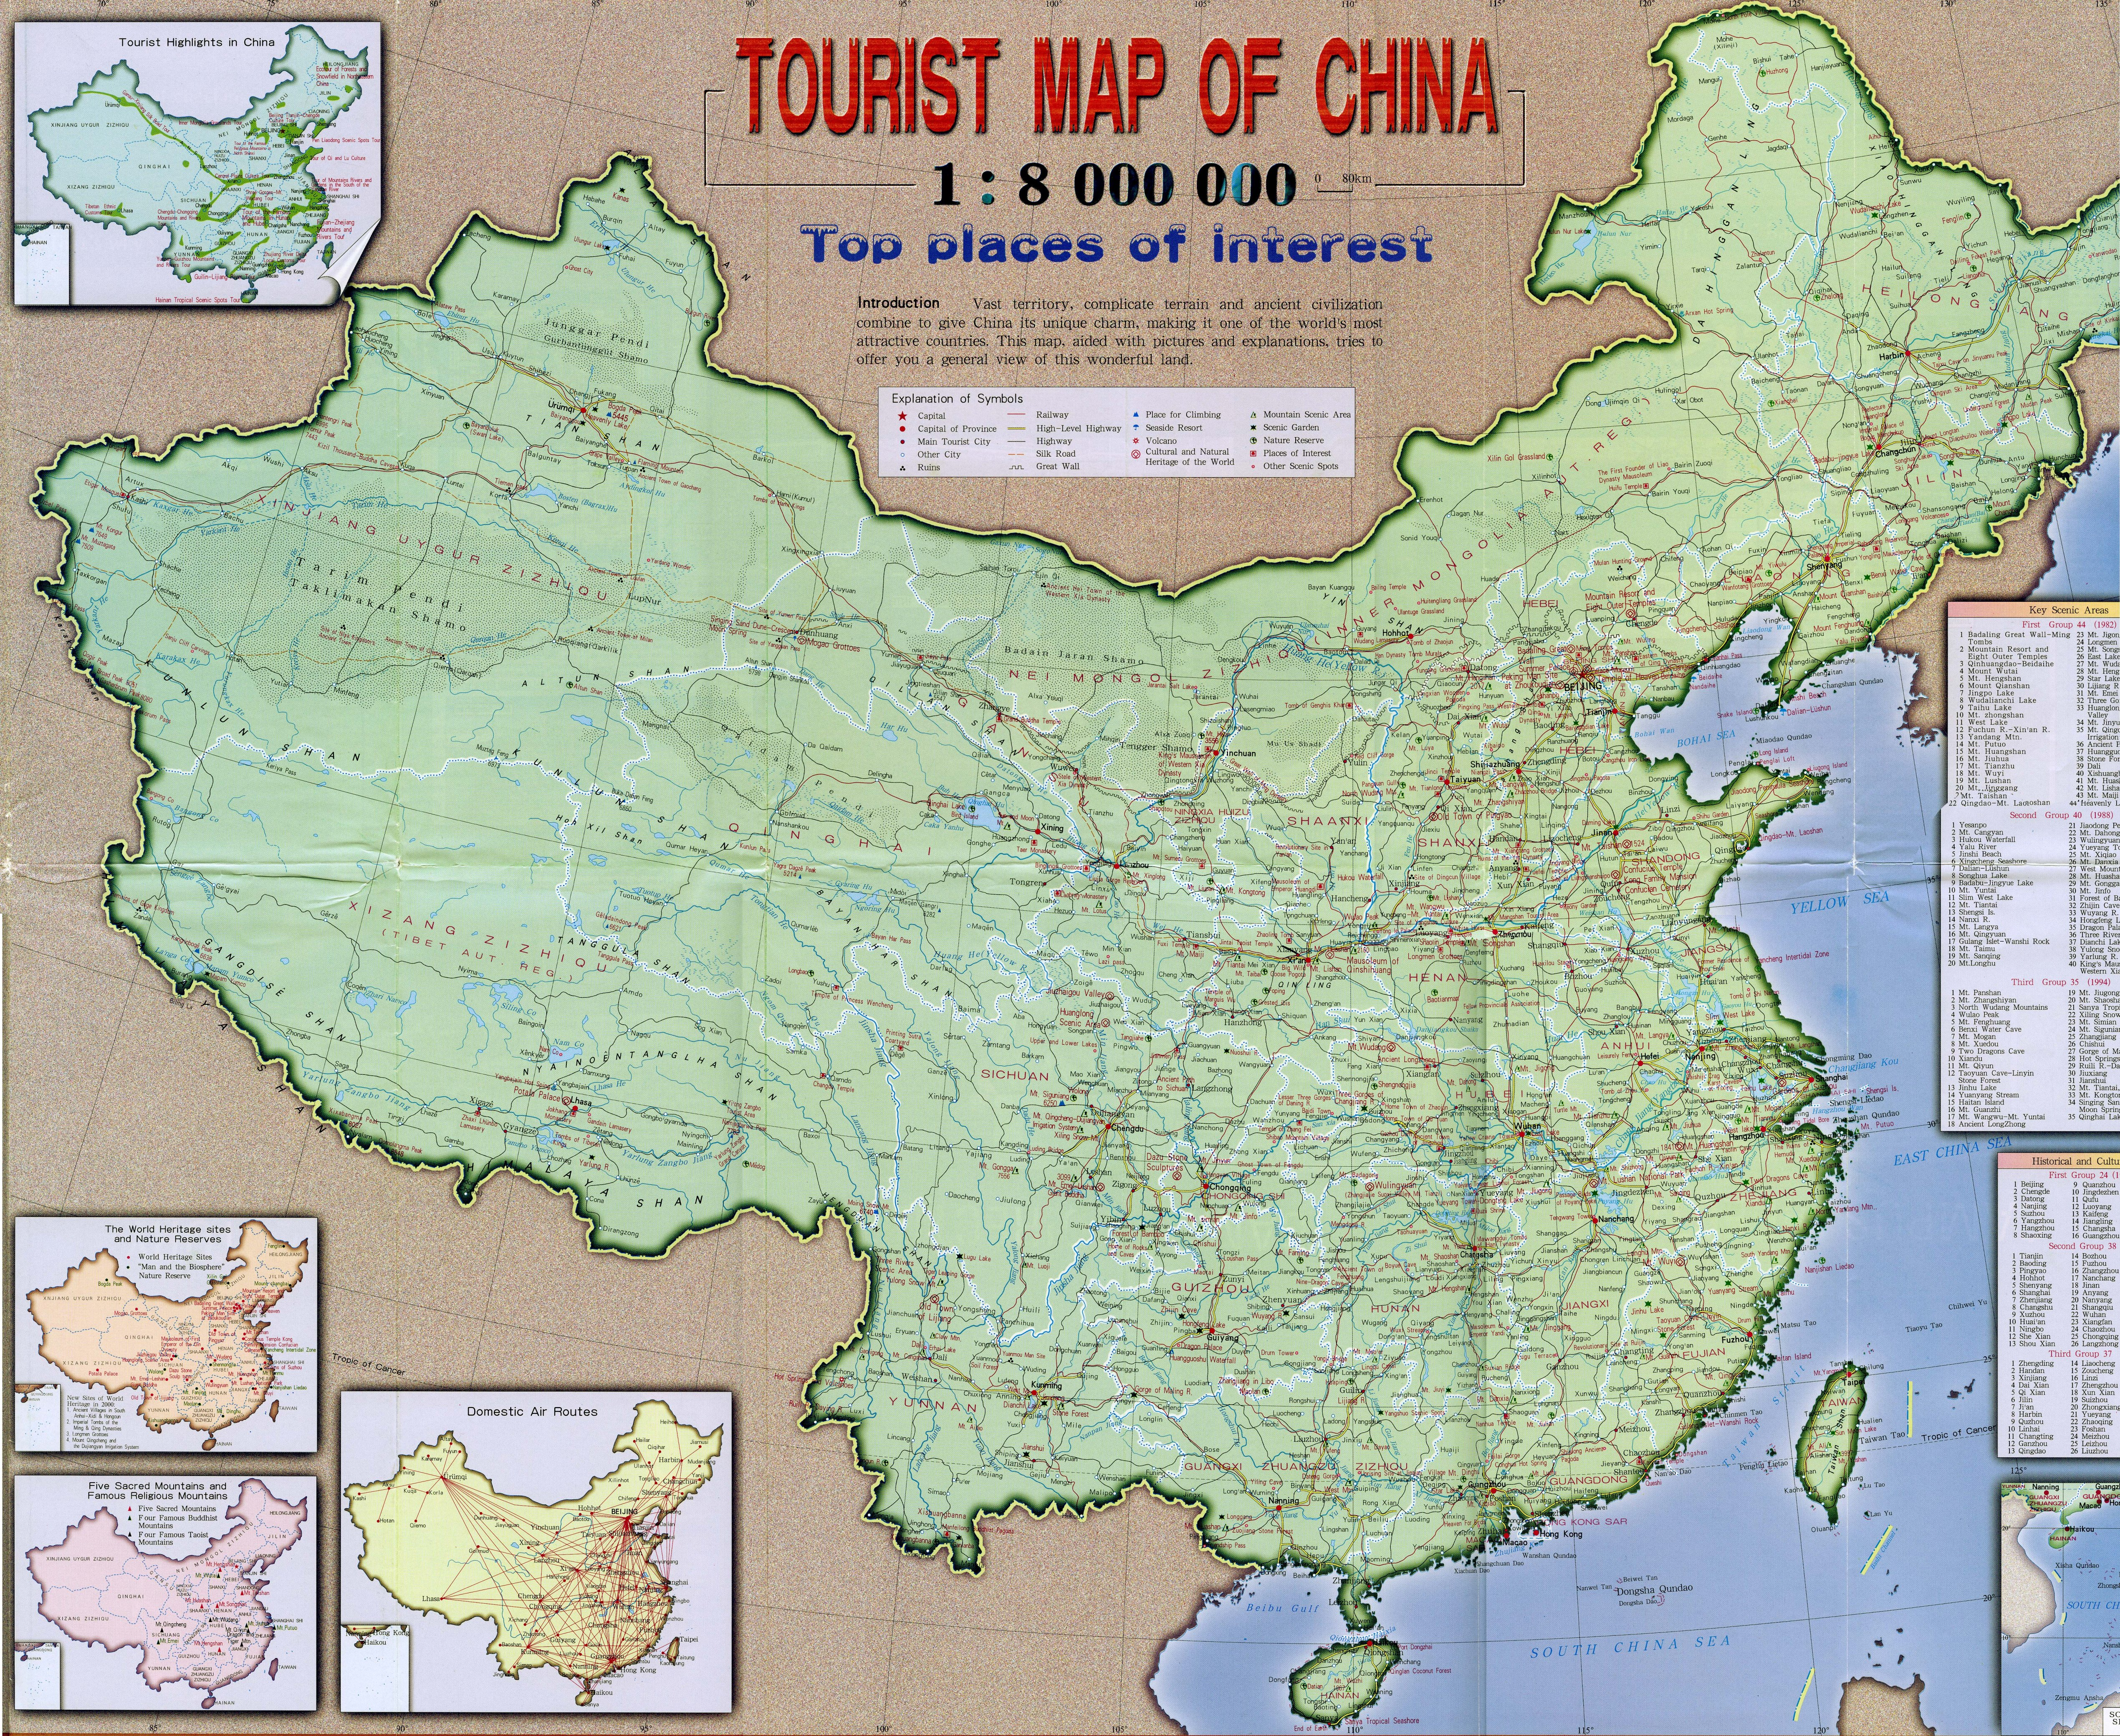 Detailed Map Of China Large detailed tourist map of China